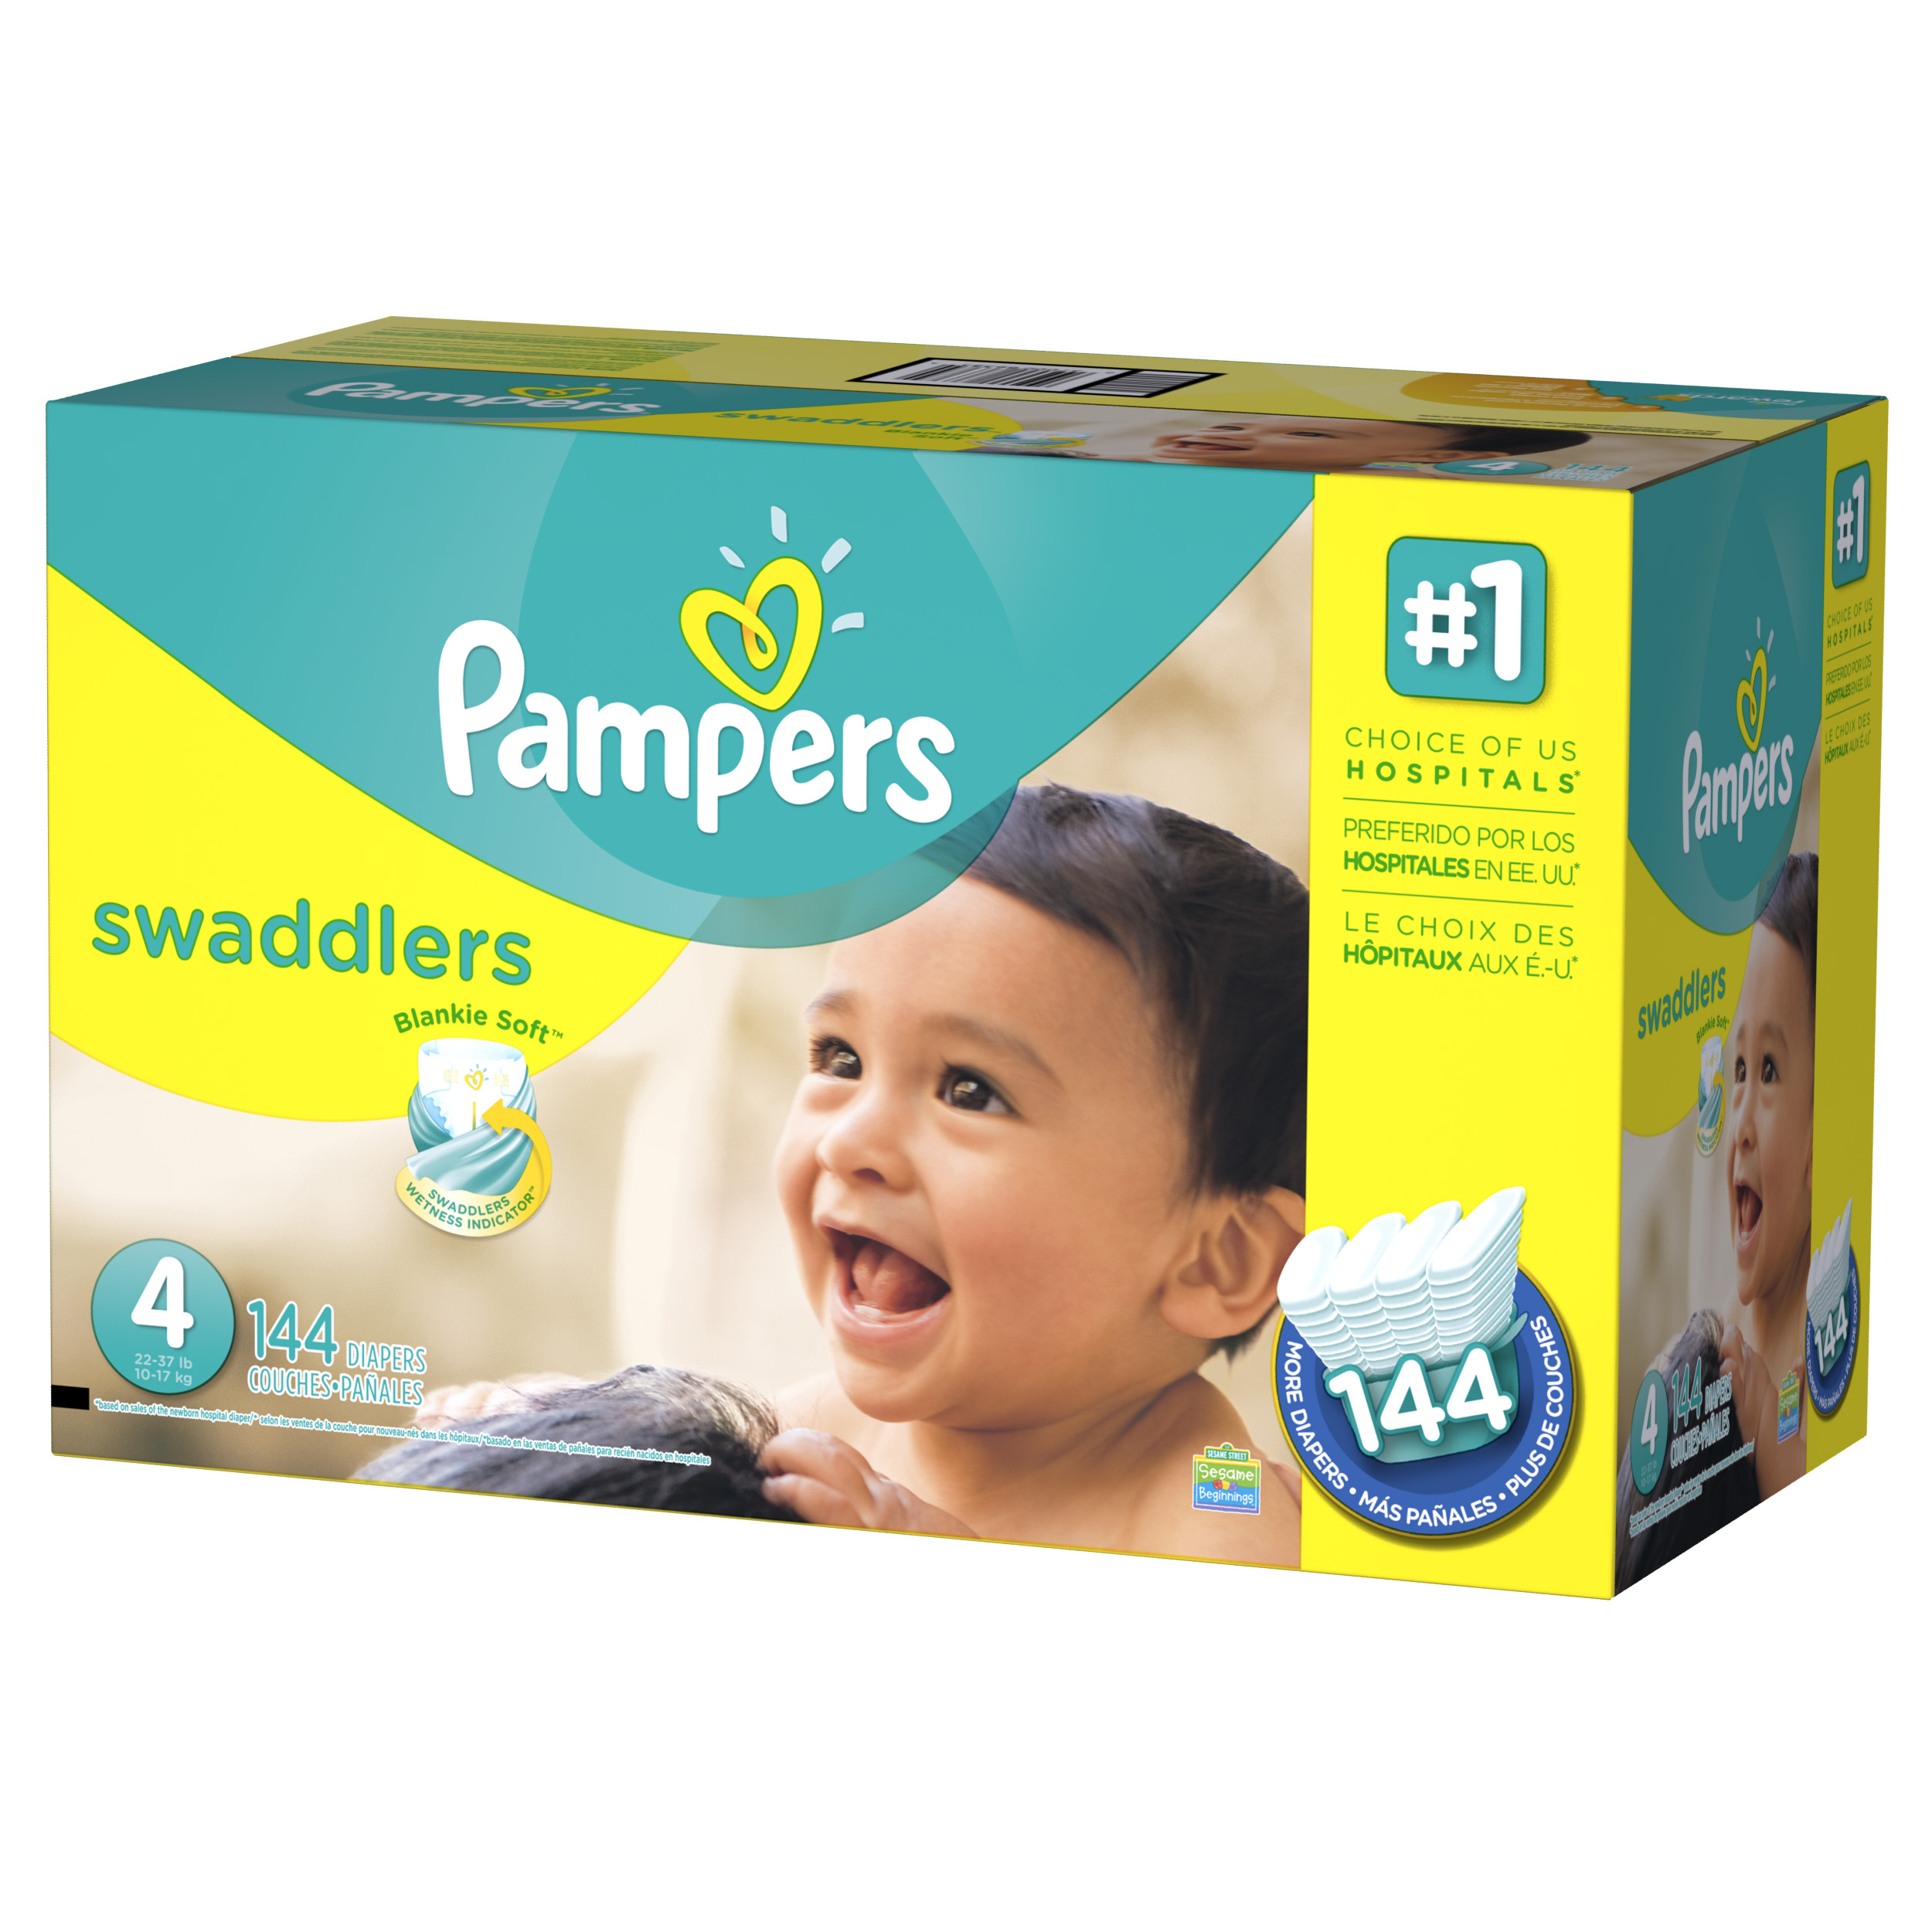 Pampers Swaddlers Diapers Size 4 144 count